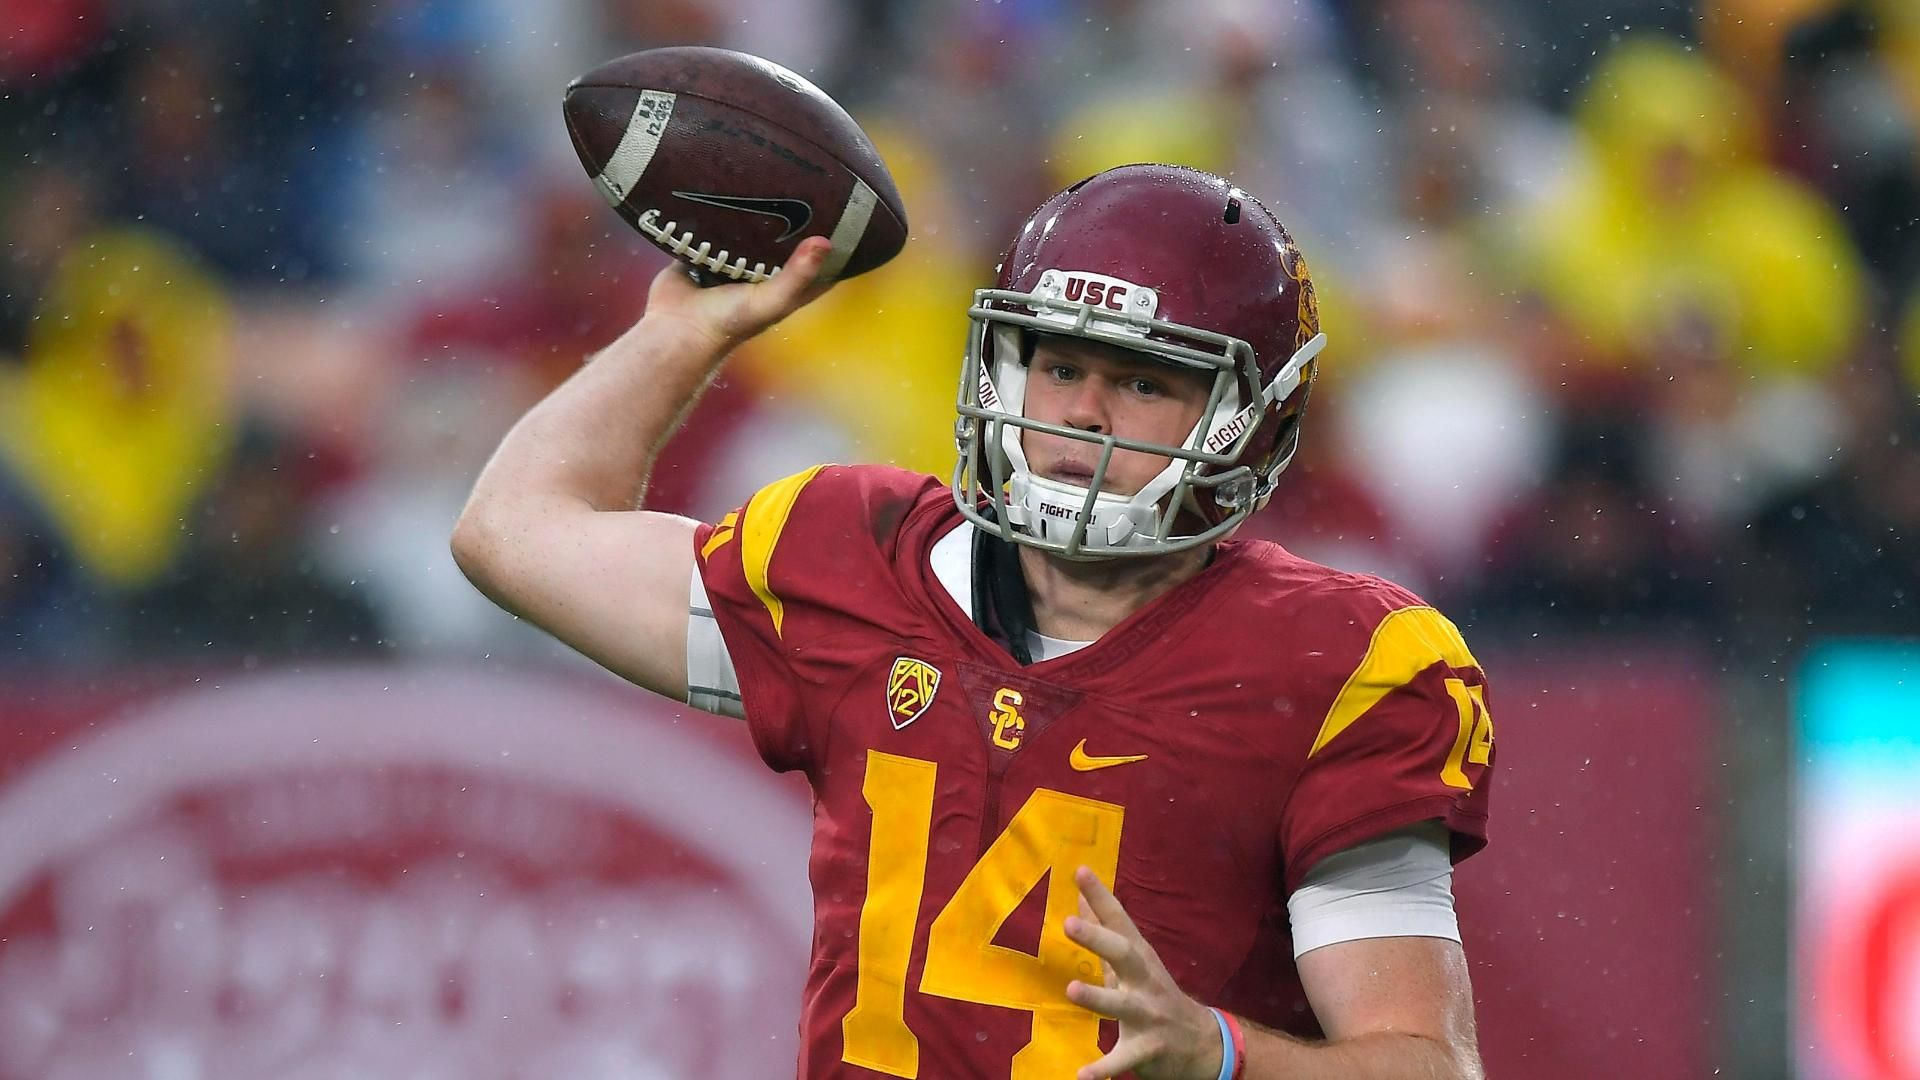 Darnold has Heisman hopes after breakout year